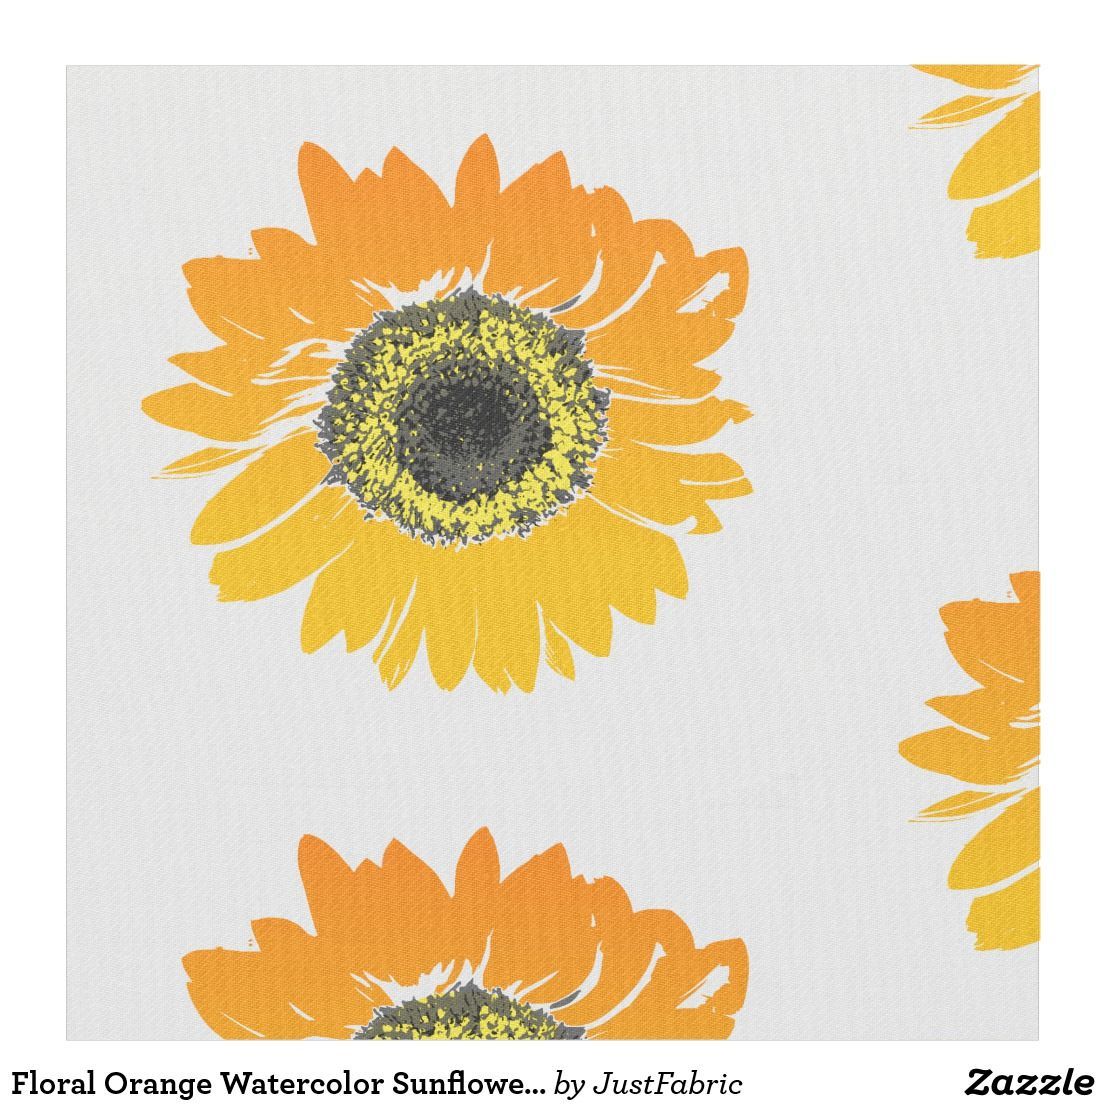 Floral Orange Watercolor Sunflowers Fabric Watercolor Sunflower